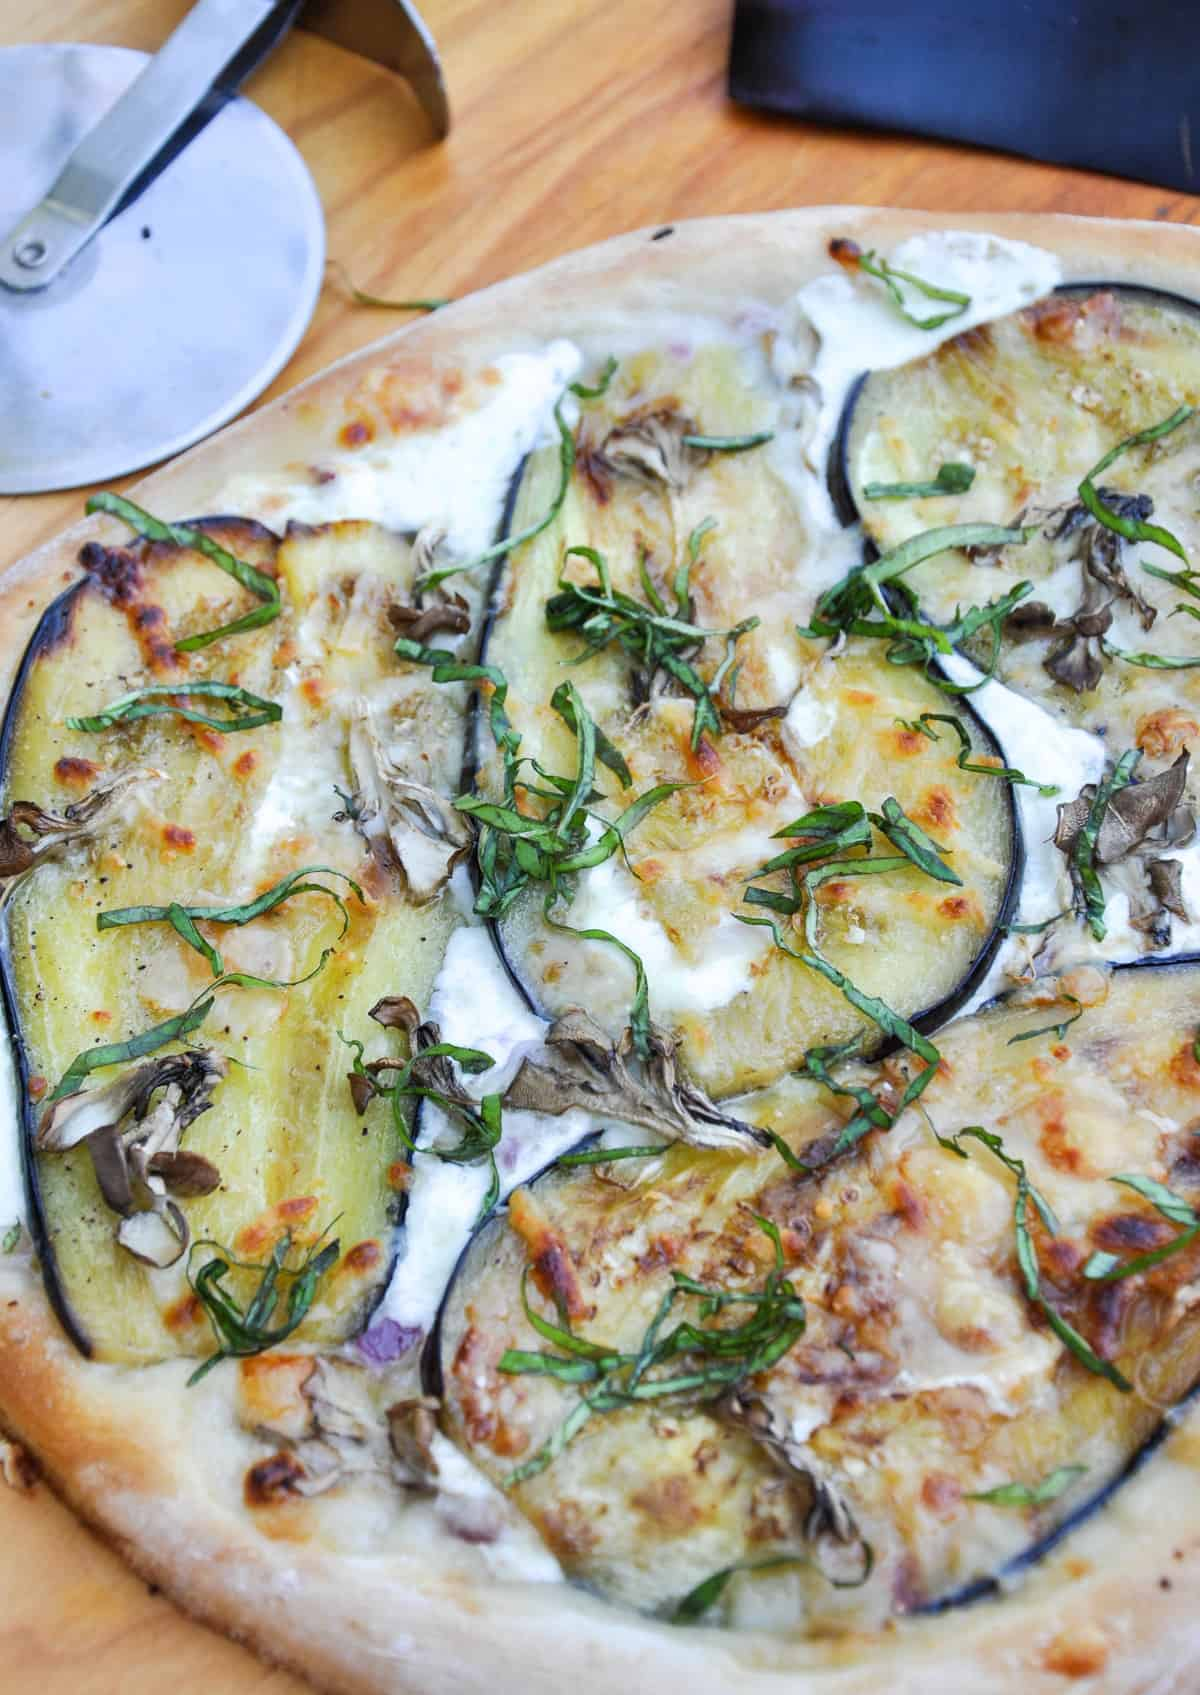 Eggplant Pizza. Earthy and delicious, this pizza incorporates fresh mozz, eggplant and mushrooms for a beautiful presentation and wonderful flavor